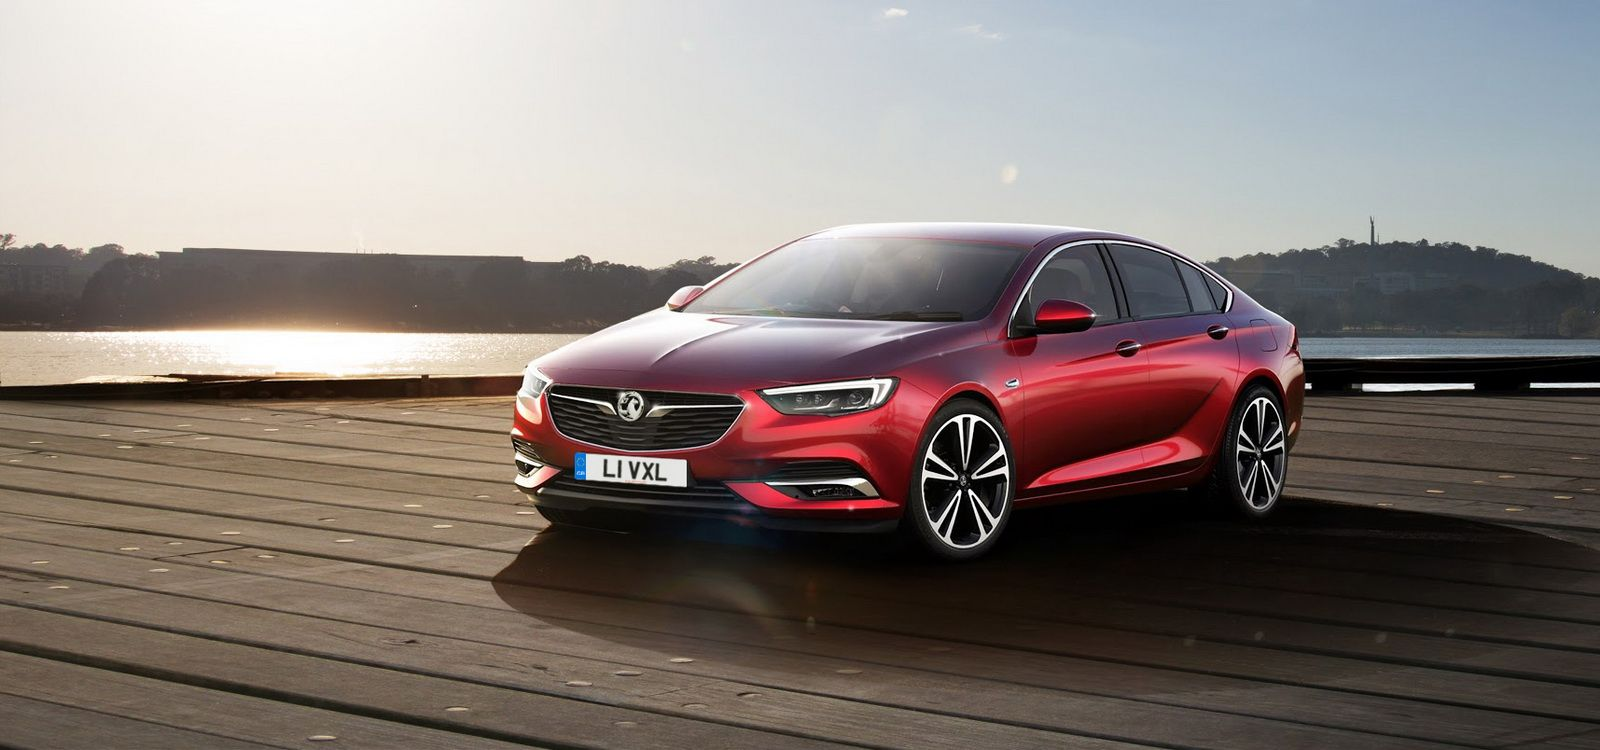 New opel insignia grand sport model goes for torque vectoring awd the latest opel insignia grand